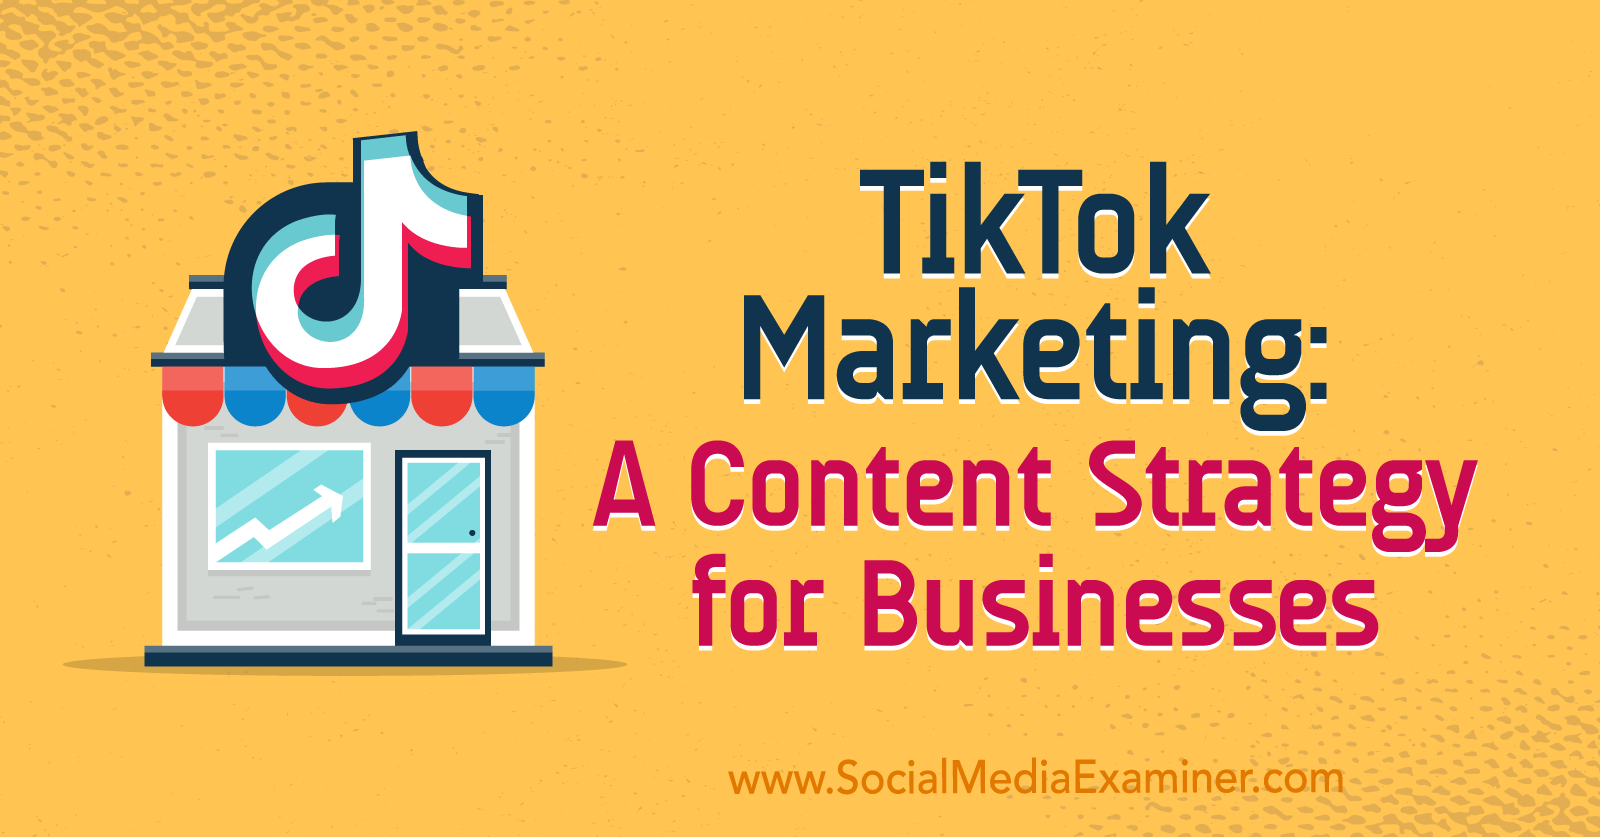 TikTok Marketing: A Content Strategy for Businesses by Keenya Kelly on Social Media Examiner.